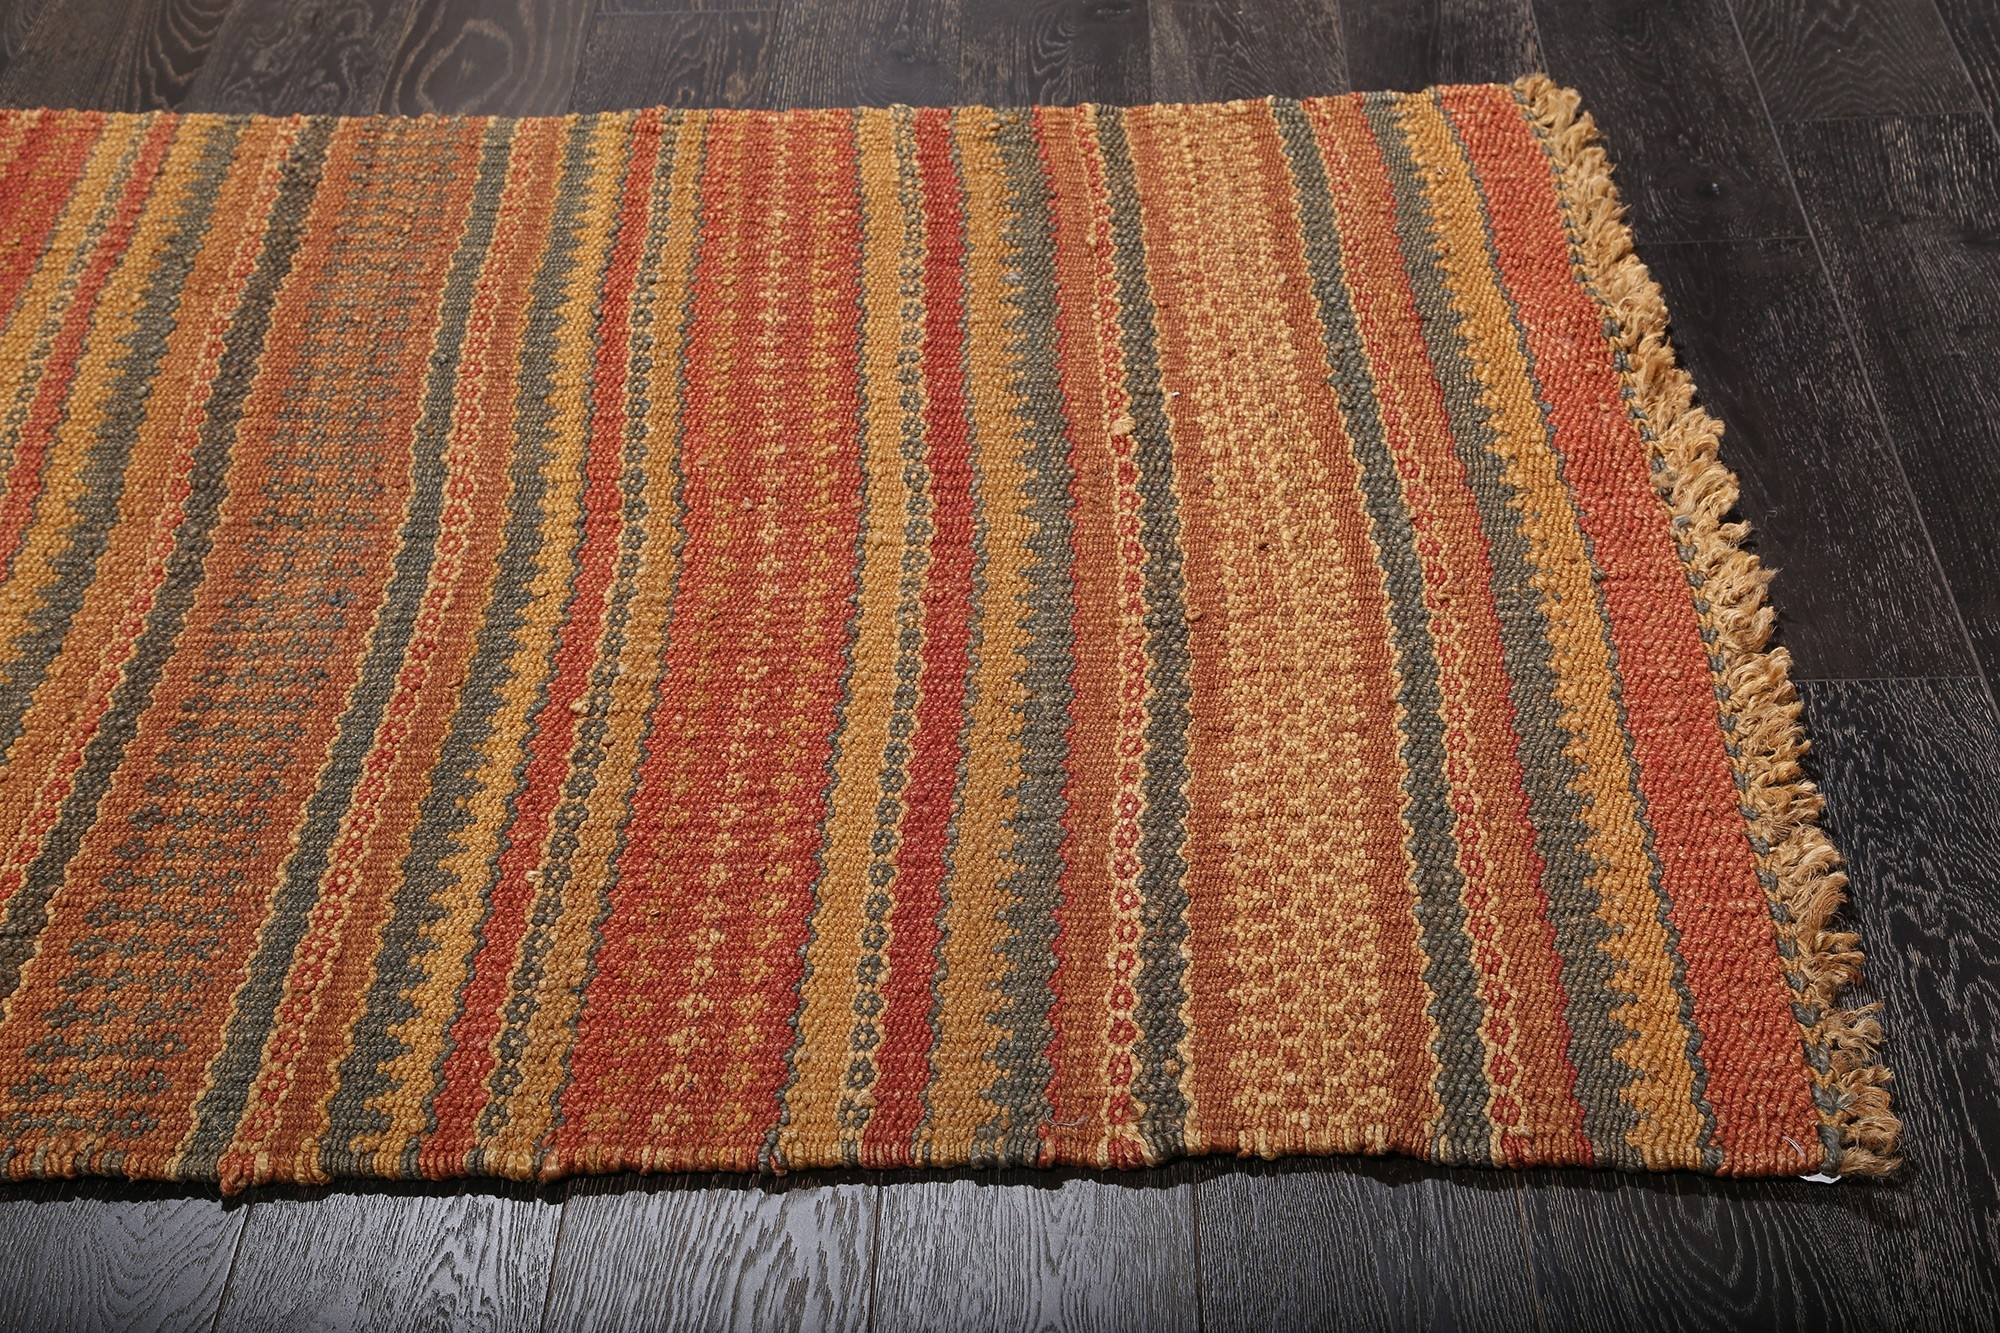 Casual Natural Fiber Red Brown Orange Jute Rug 36223 Intended For Brown Orange Rugs (View 14 of 15)